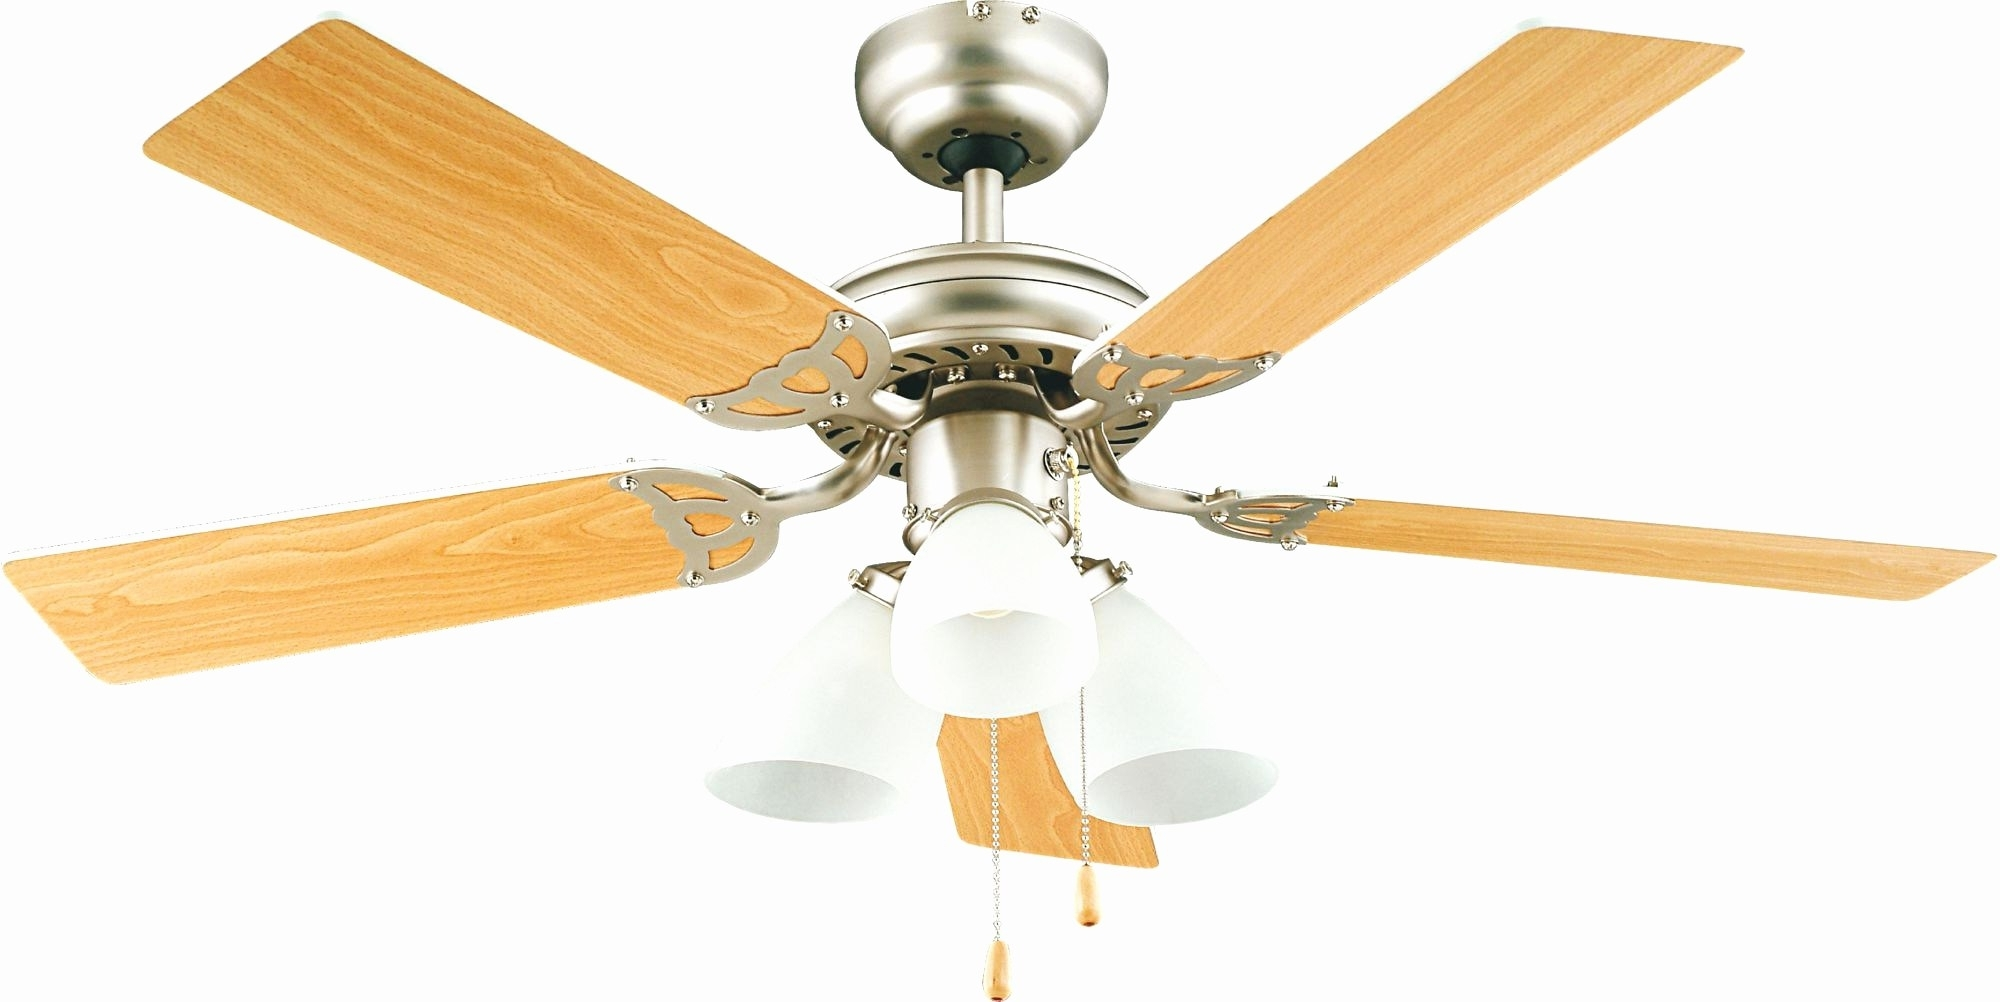 Widely Used Artistic Of Kitchen Ceiling Fan Light Outdoor Ceiling Fans Light Inside Outdoor Ceiling Fans For High Wind Areas (View 19 of 20)